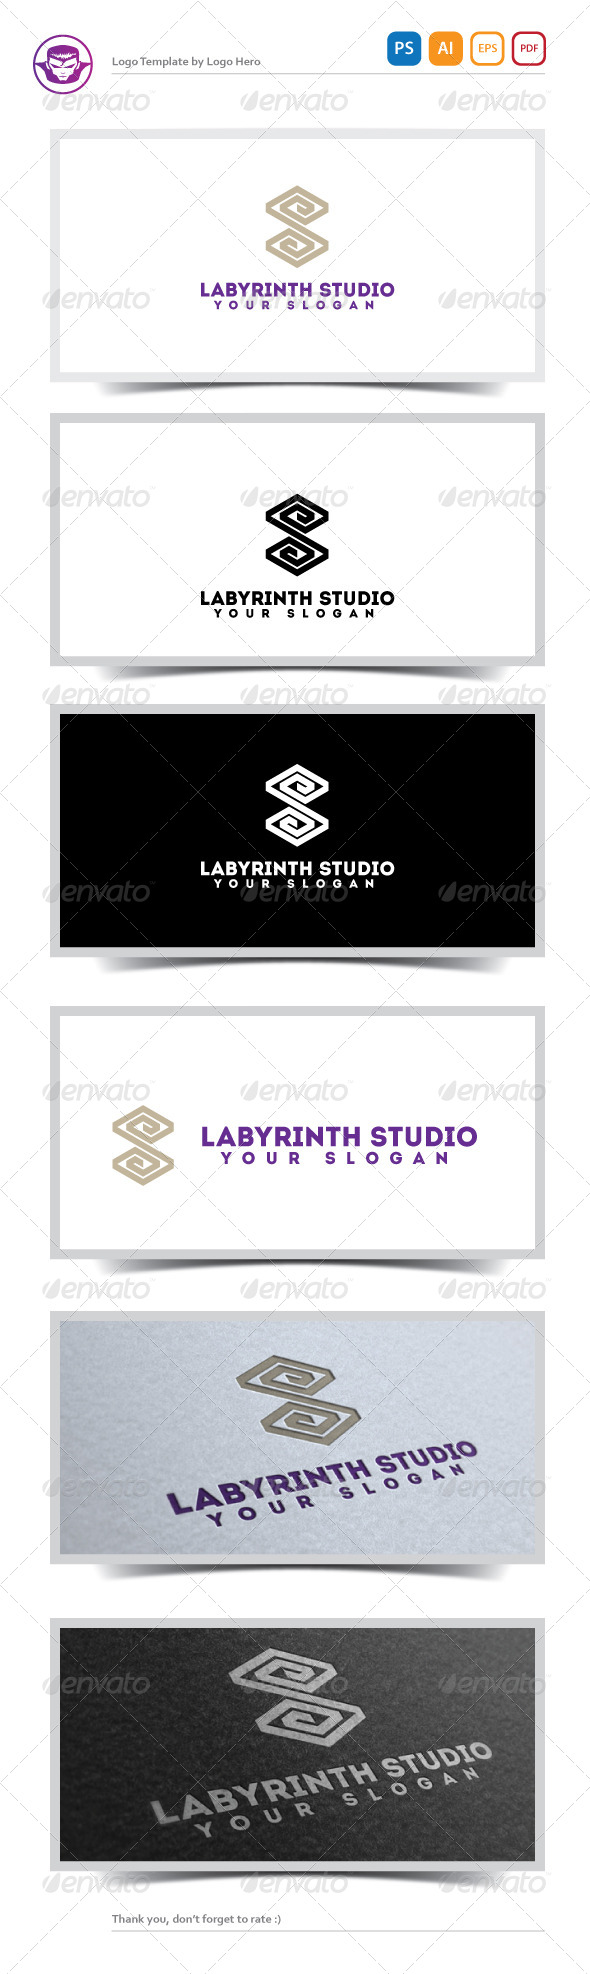 GraphicRiver Labyrinth Studio Logo Template 5181862